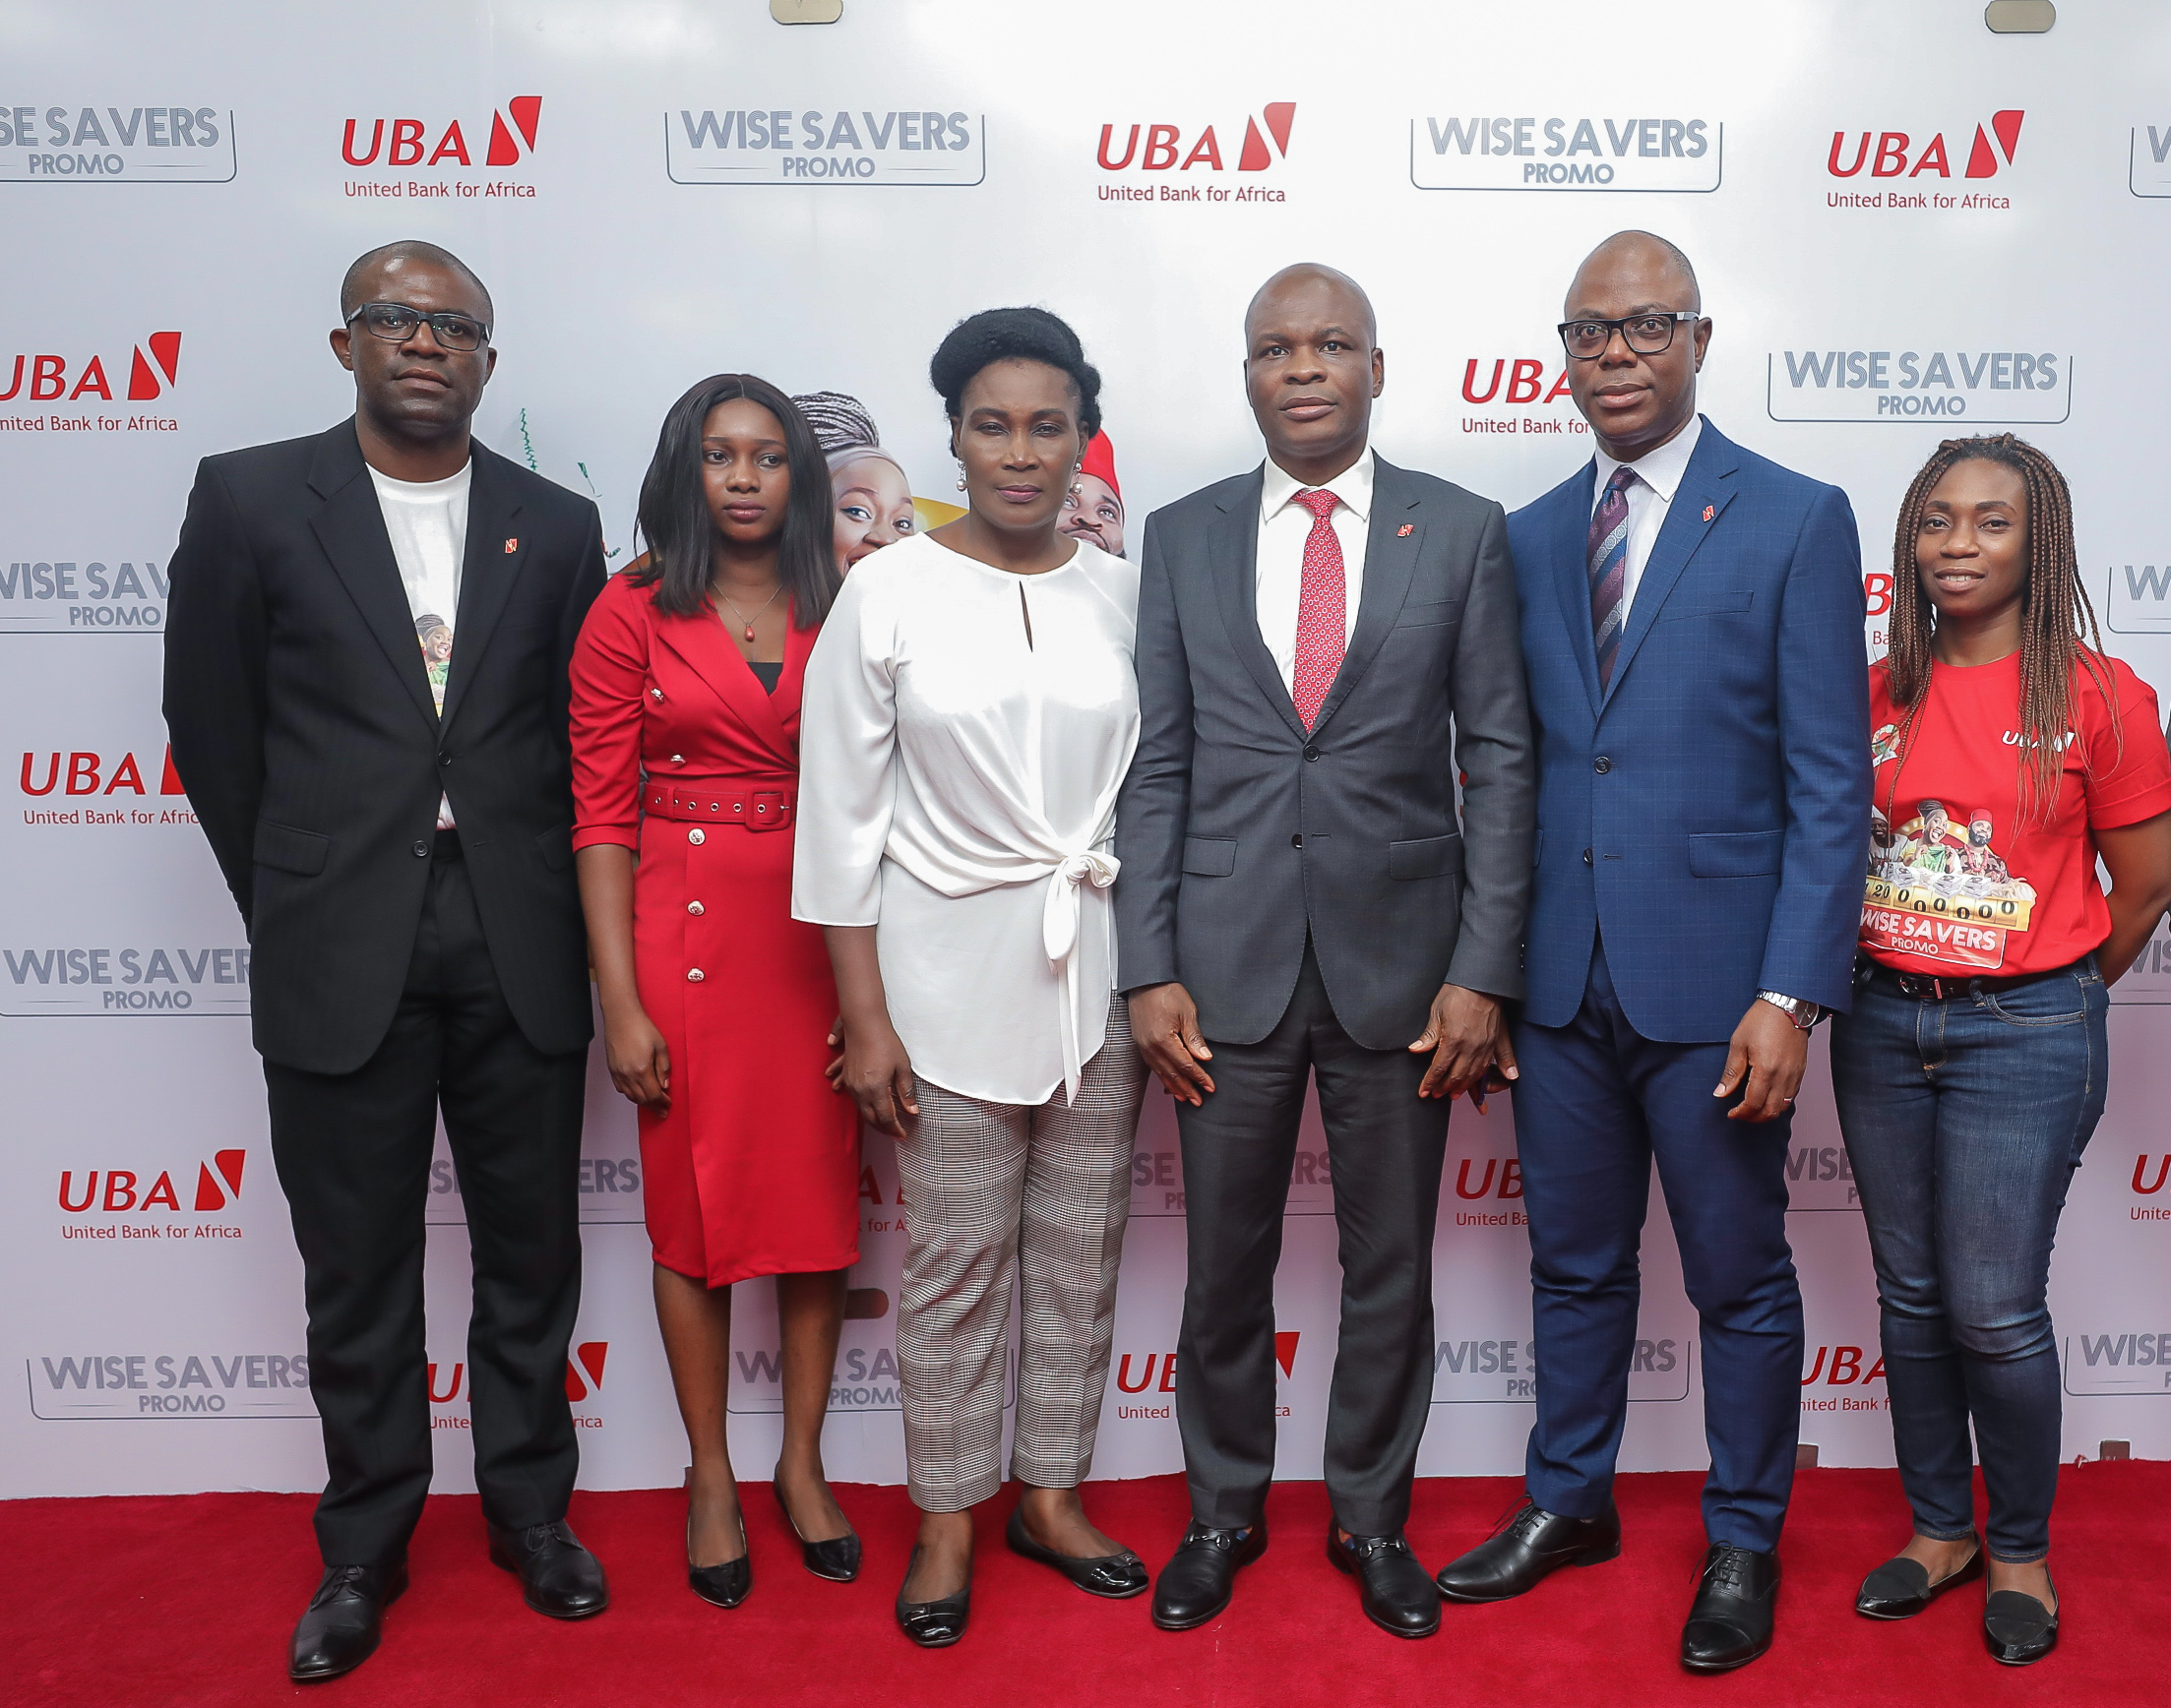 The United Bank for Africa (UBA) has rewarded another 20 customers who emerged winners in the second quarterly draw of the UBA Wise Savers Promo with N1.5 million each, bringing the total amount won by 40 customers so far to N60 million.